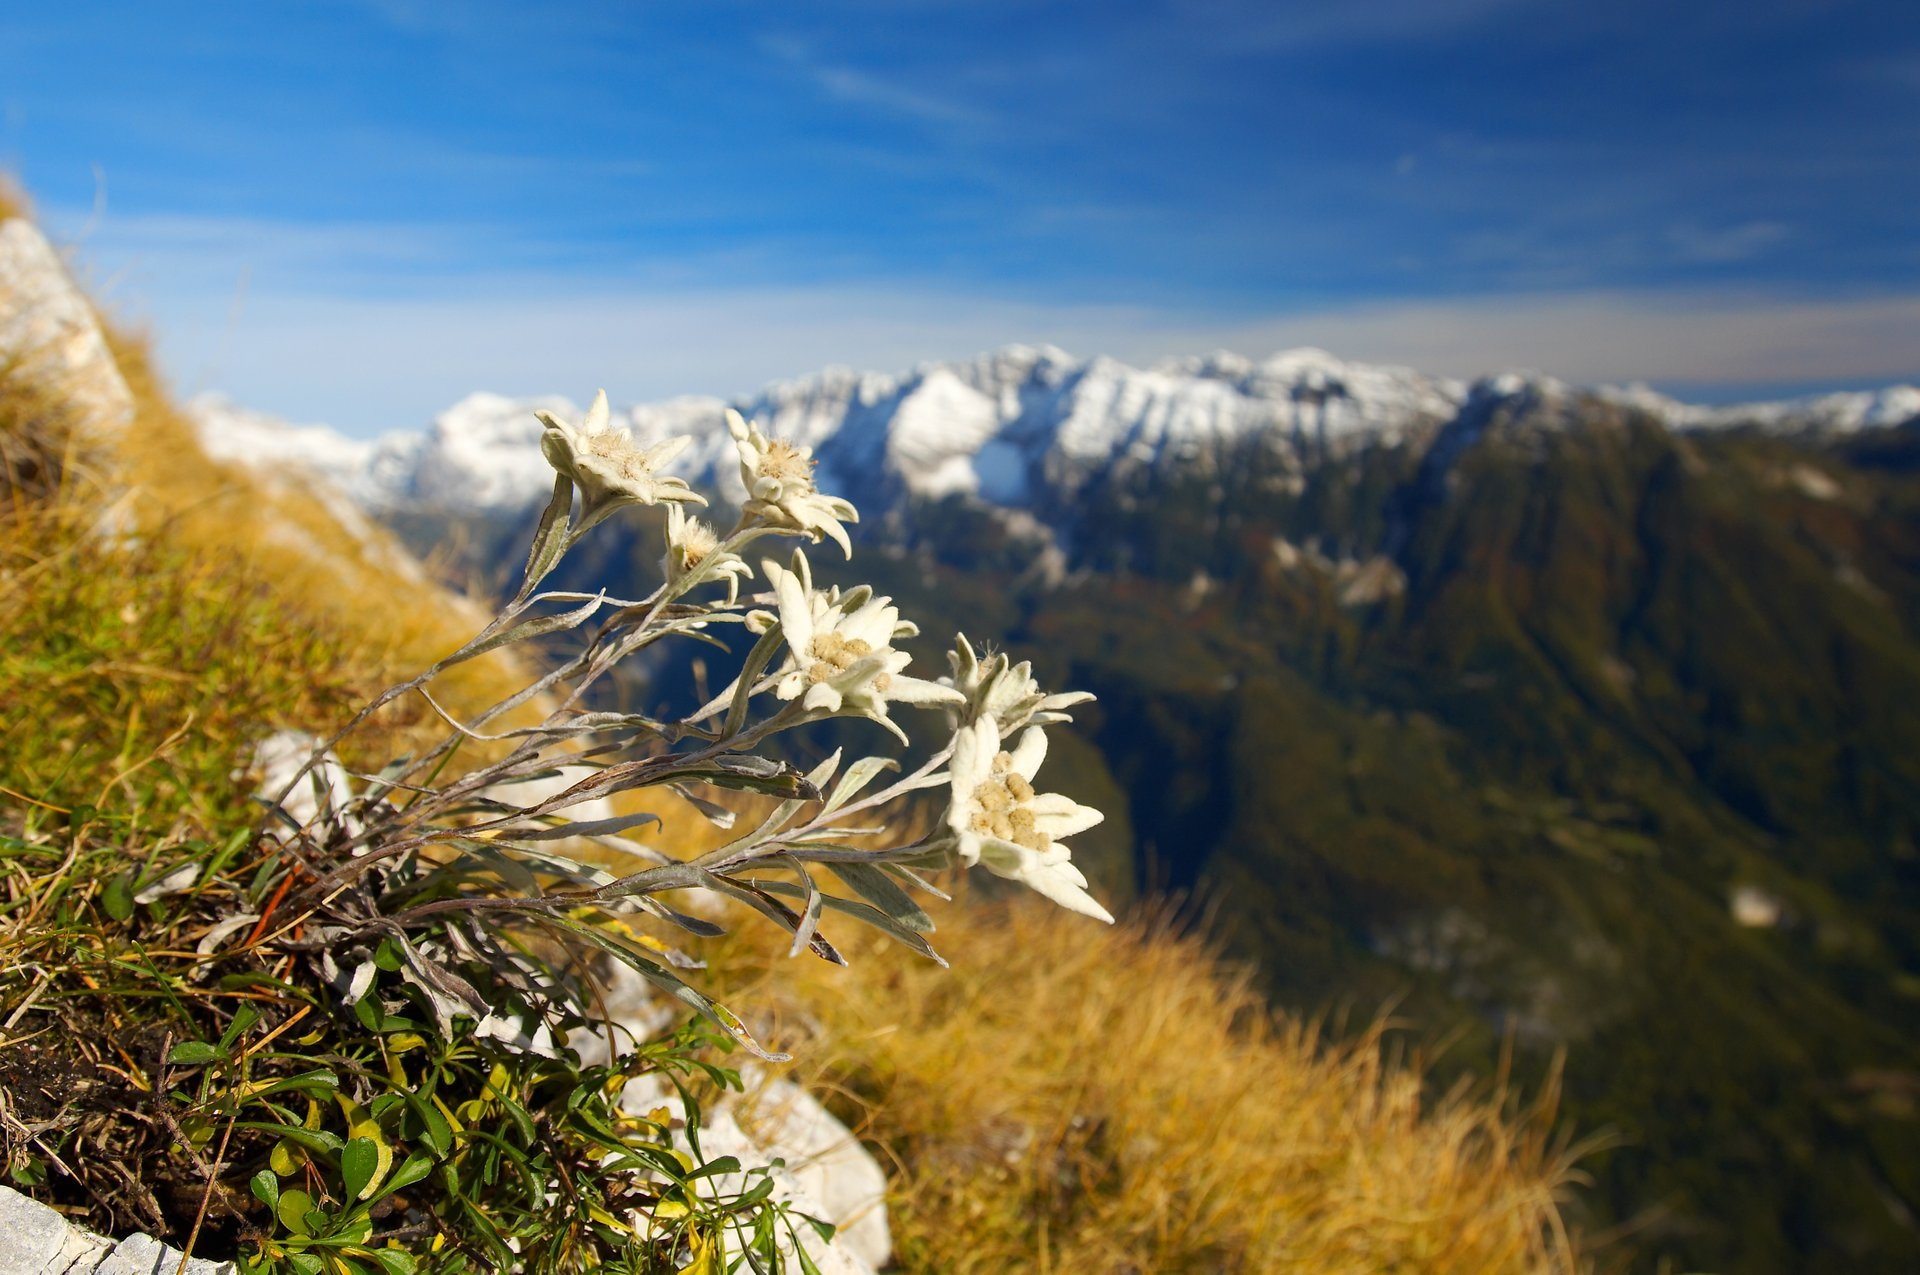 Edelweiss on the southern slopes of Bavški Grintovec above the Soča Valley 2020